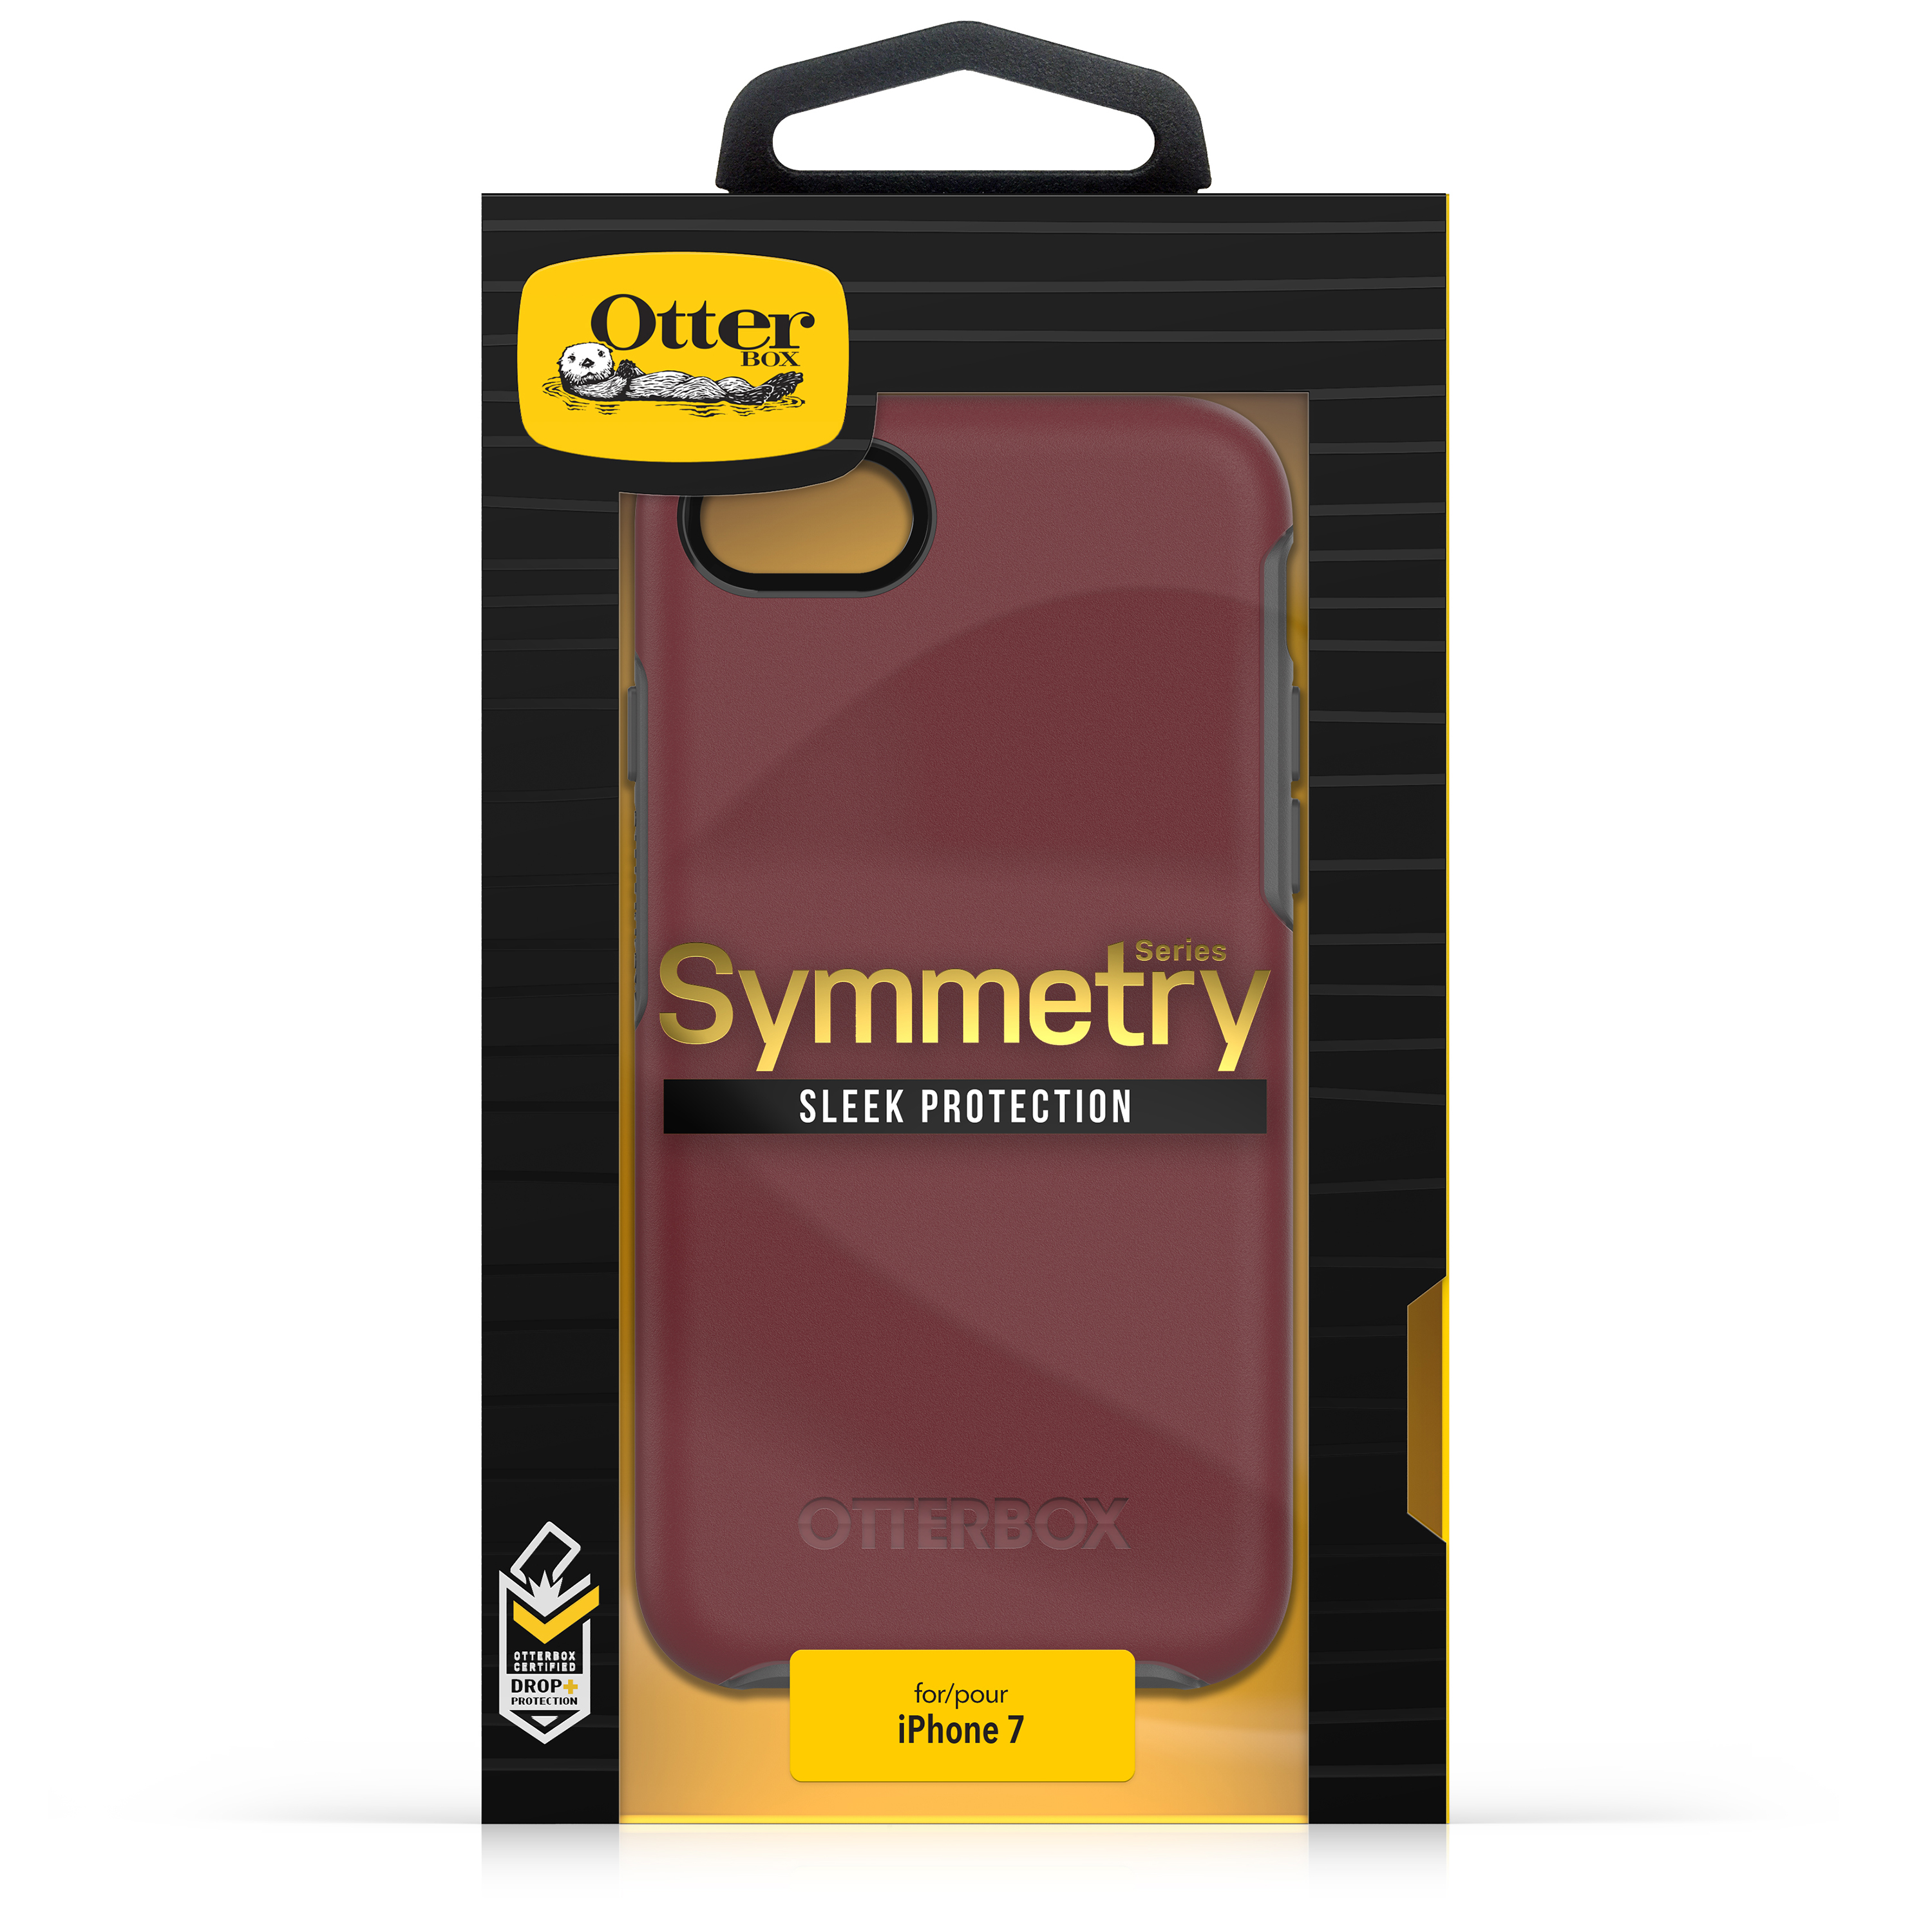 newest 1ba97 13180 OtterBox Symmetry Series Case for iPhone 8 & iPhone 7, Black ...